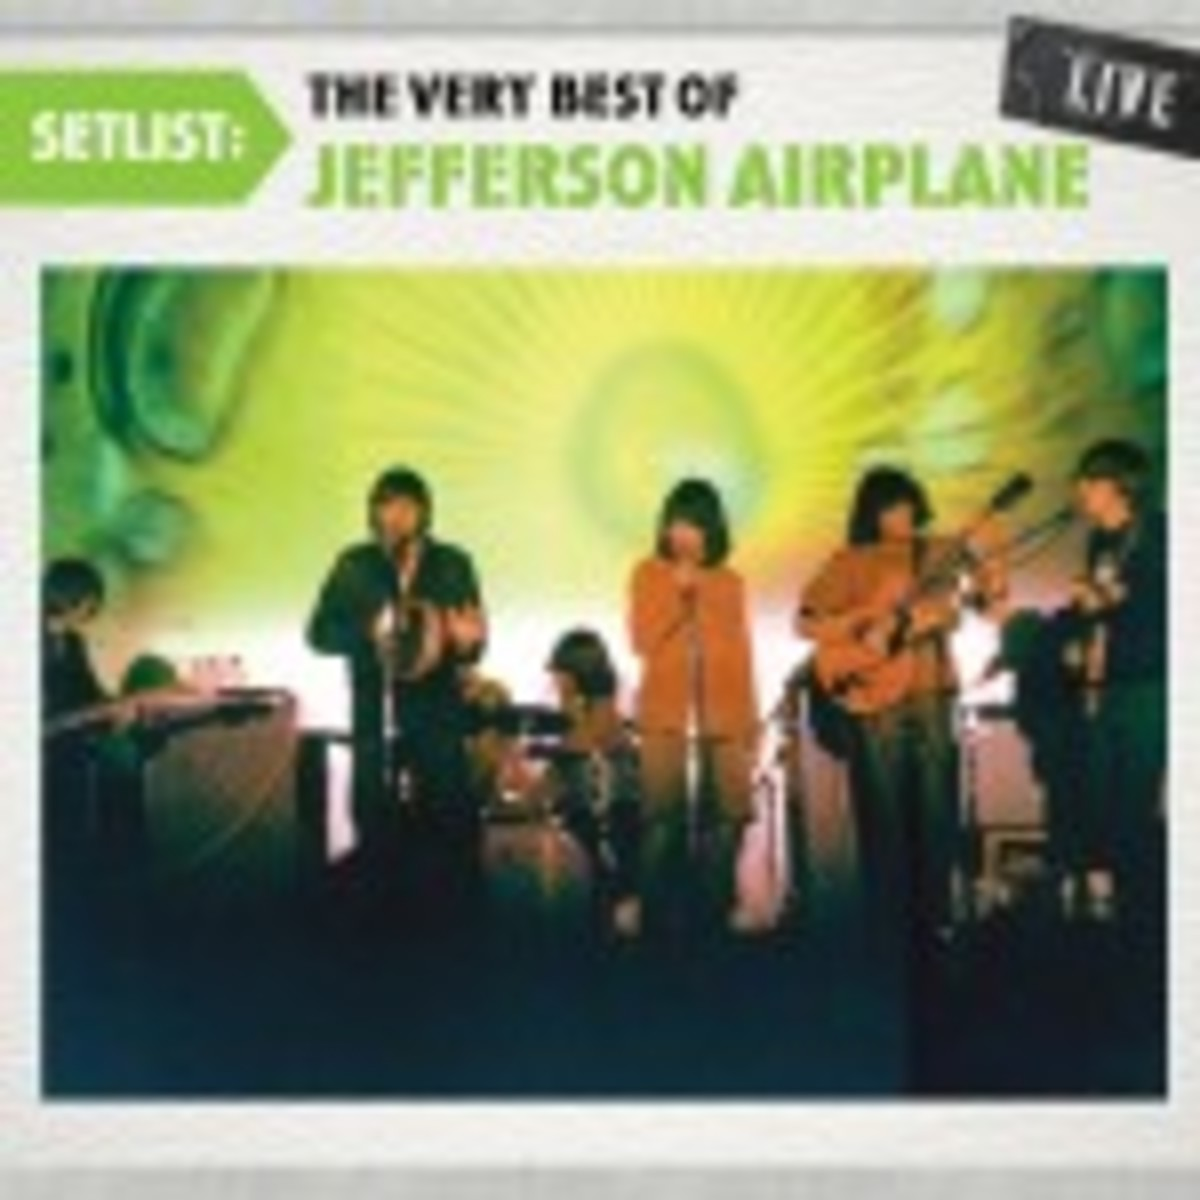 """Setlist: The Very Best of Jefferson Airplane Live"" is due July 13. (SONY)"